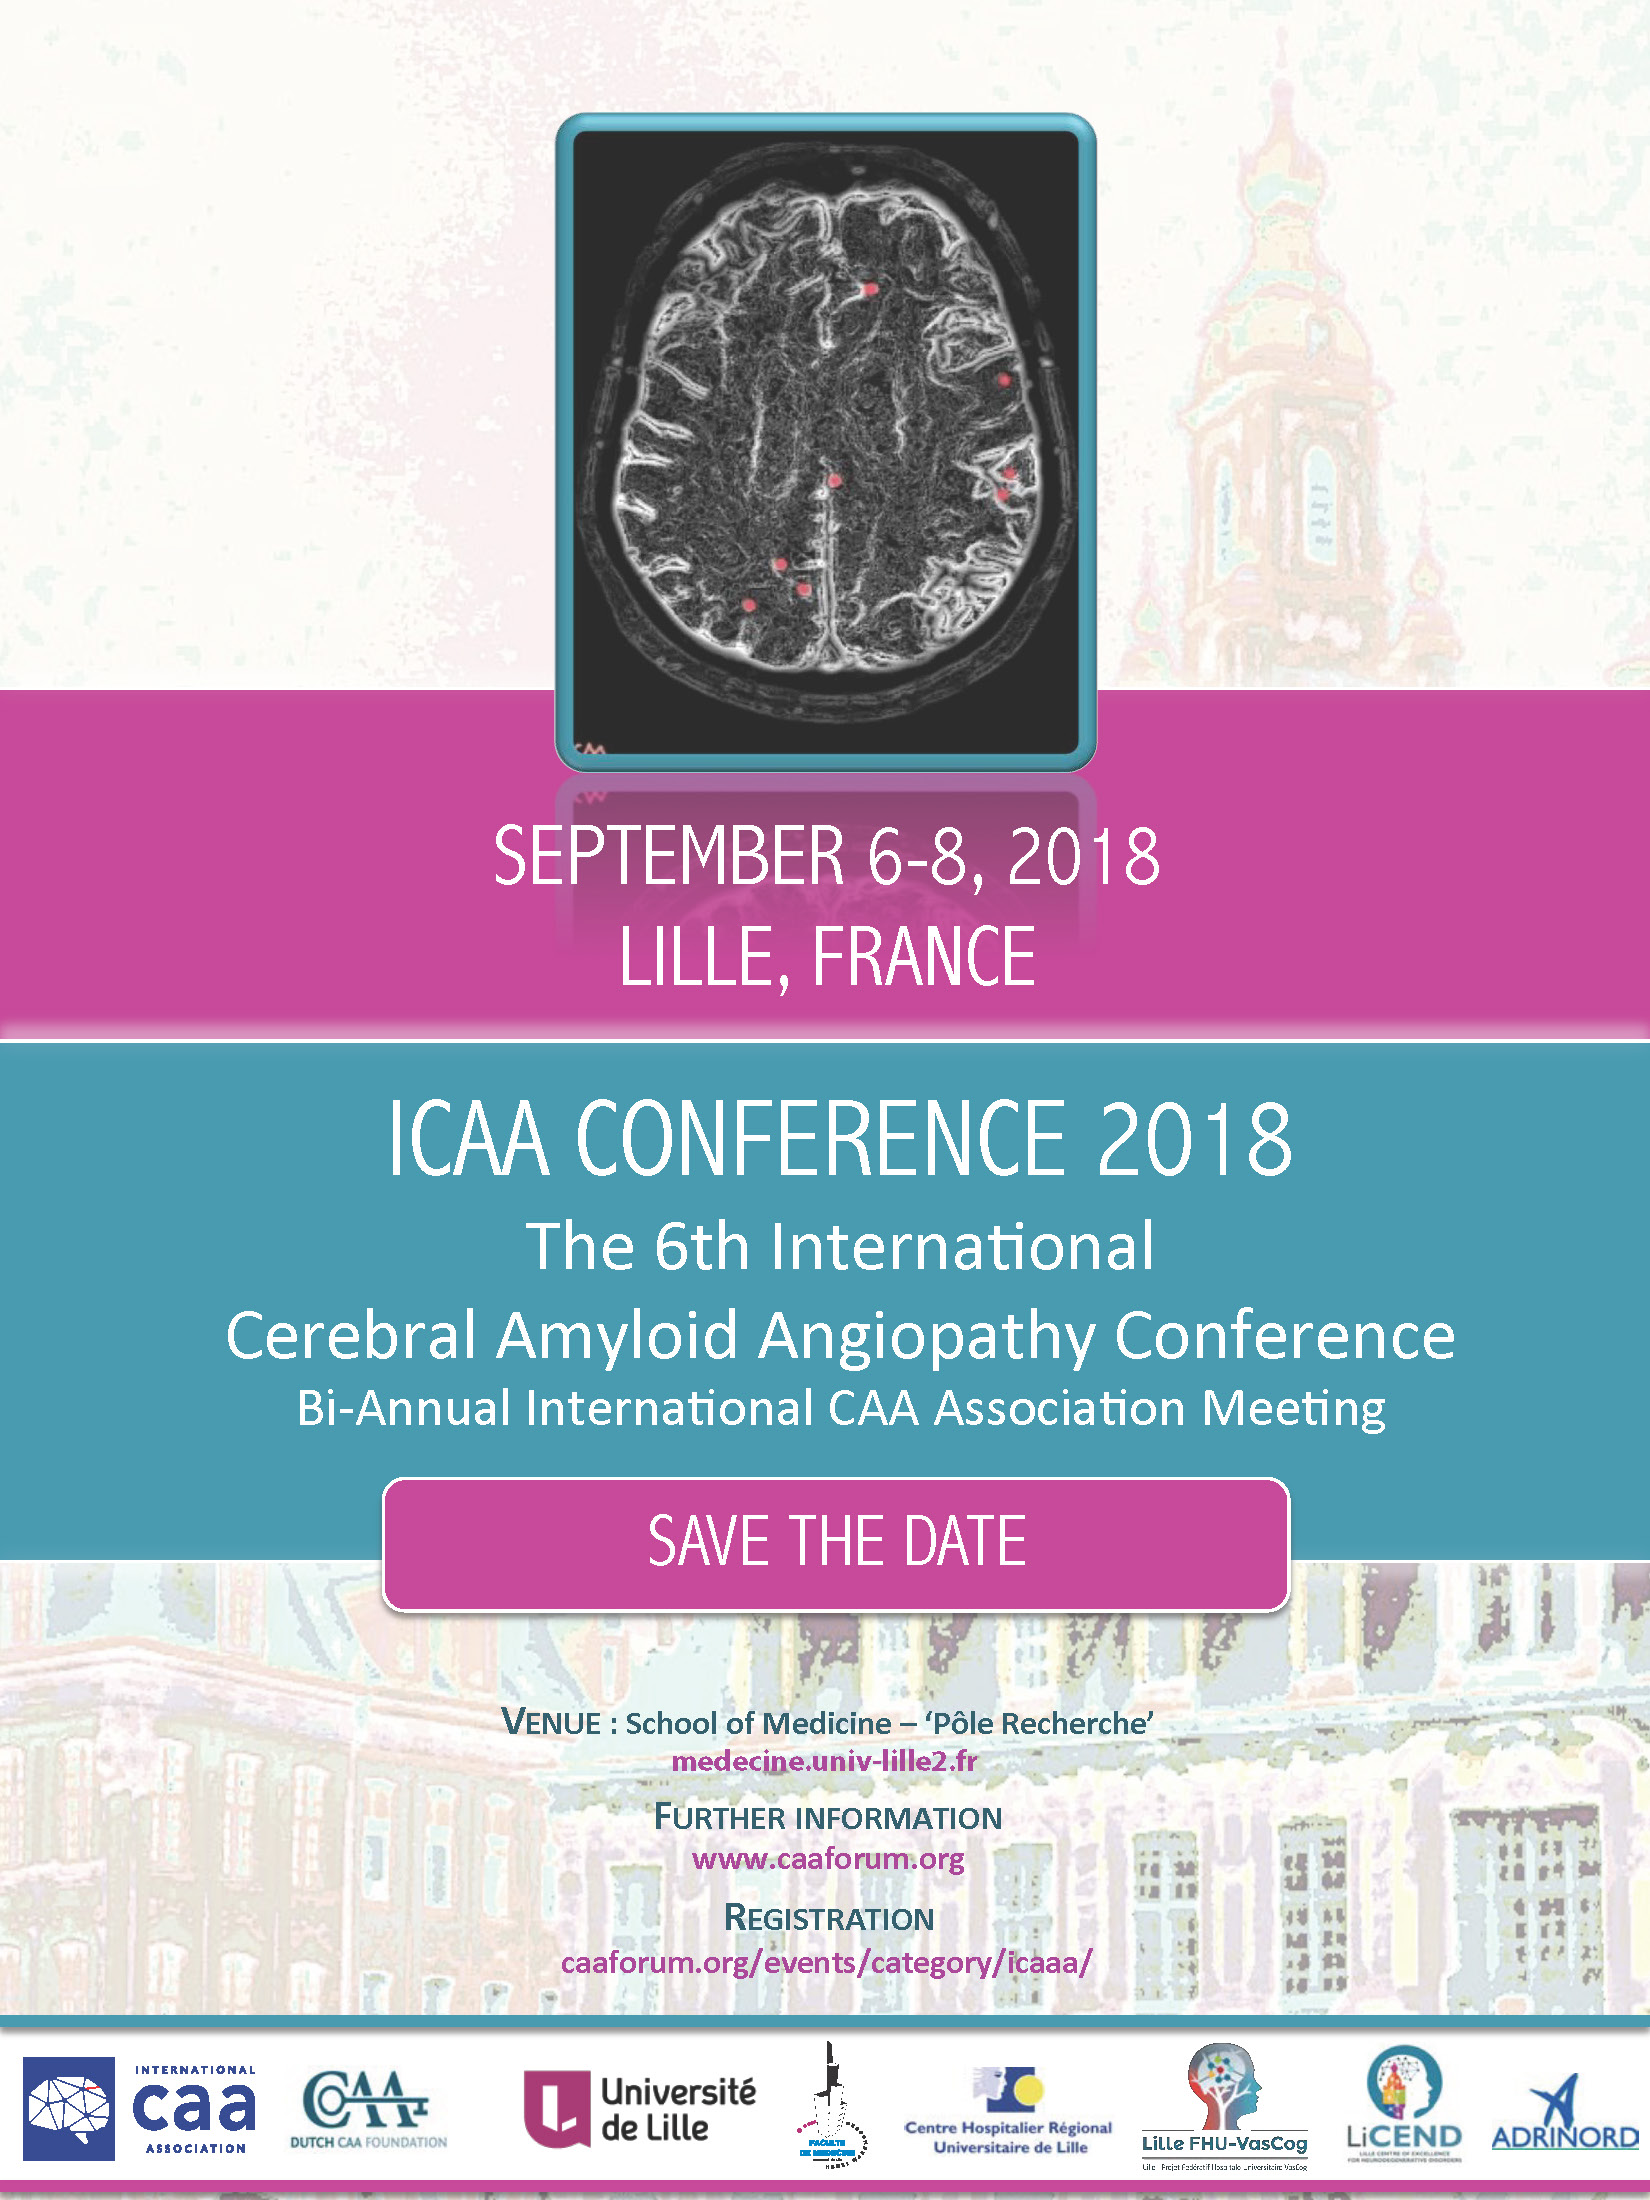 ICAA  CONFERENCE 2018 - CONGRES D'EPILEPTOLOGIE - LILLE